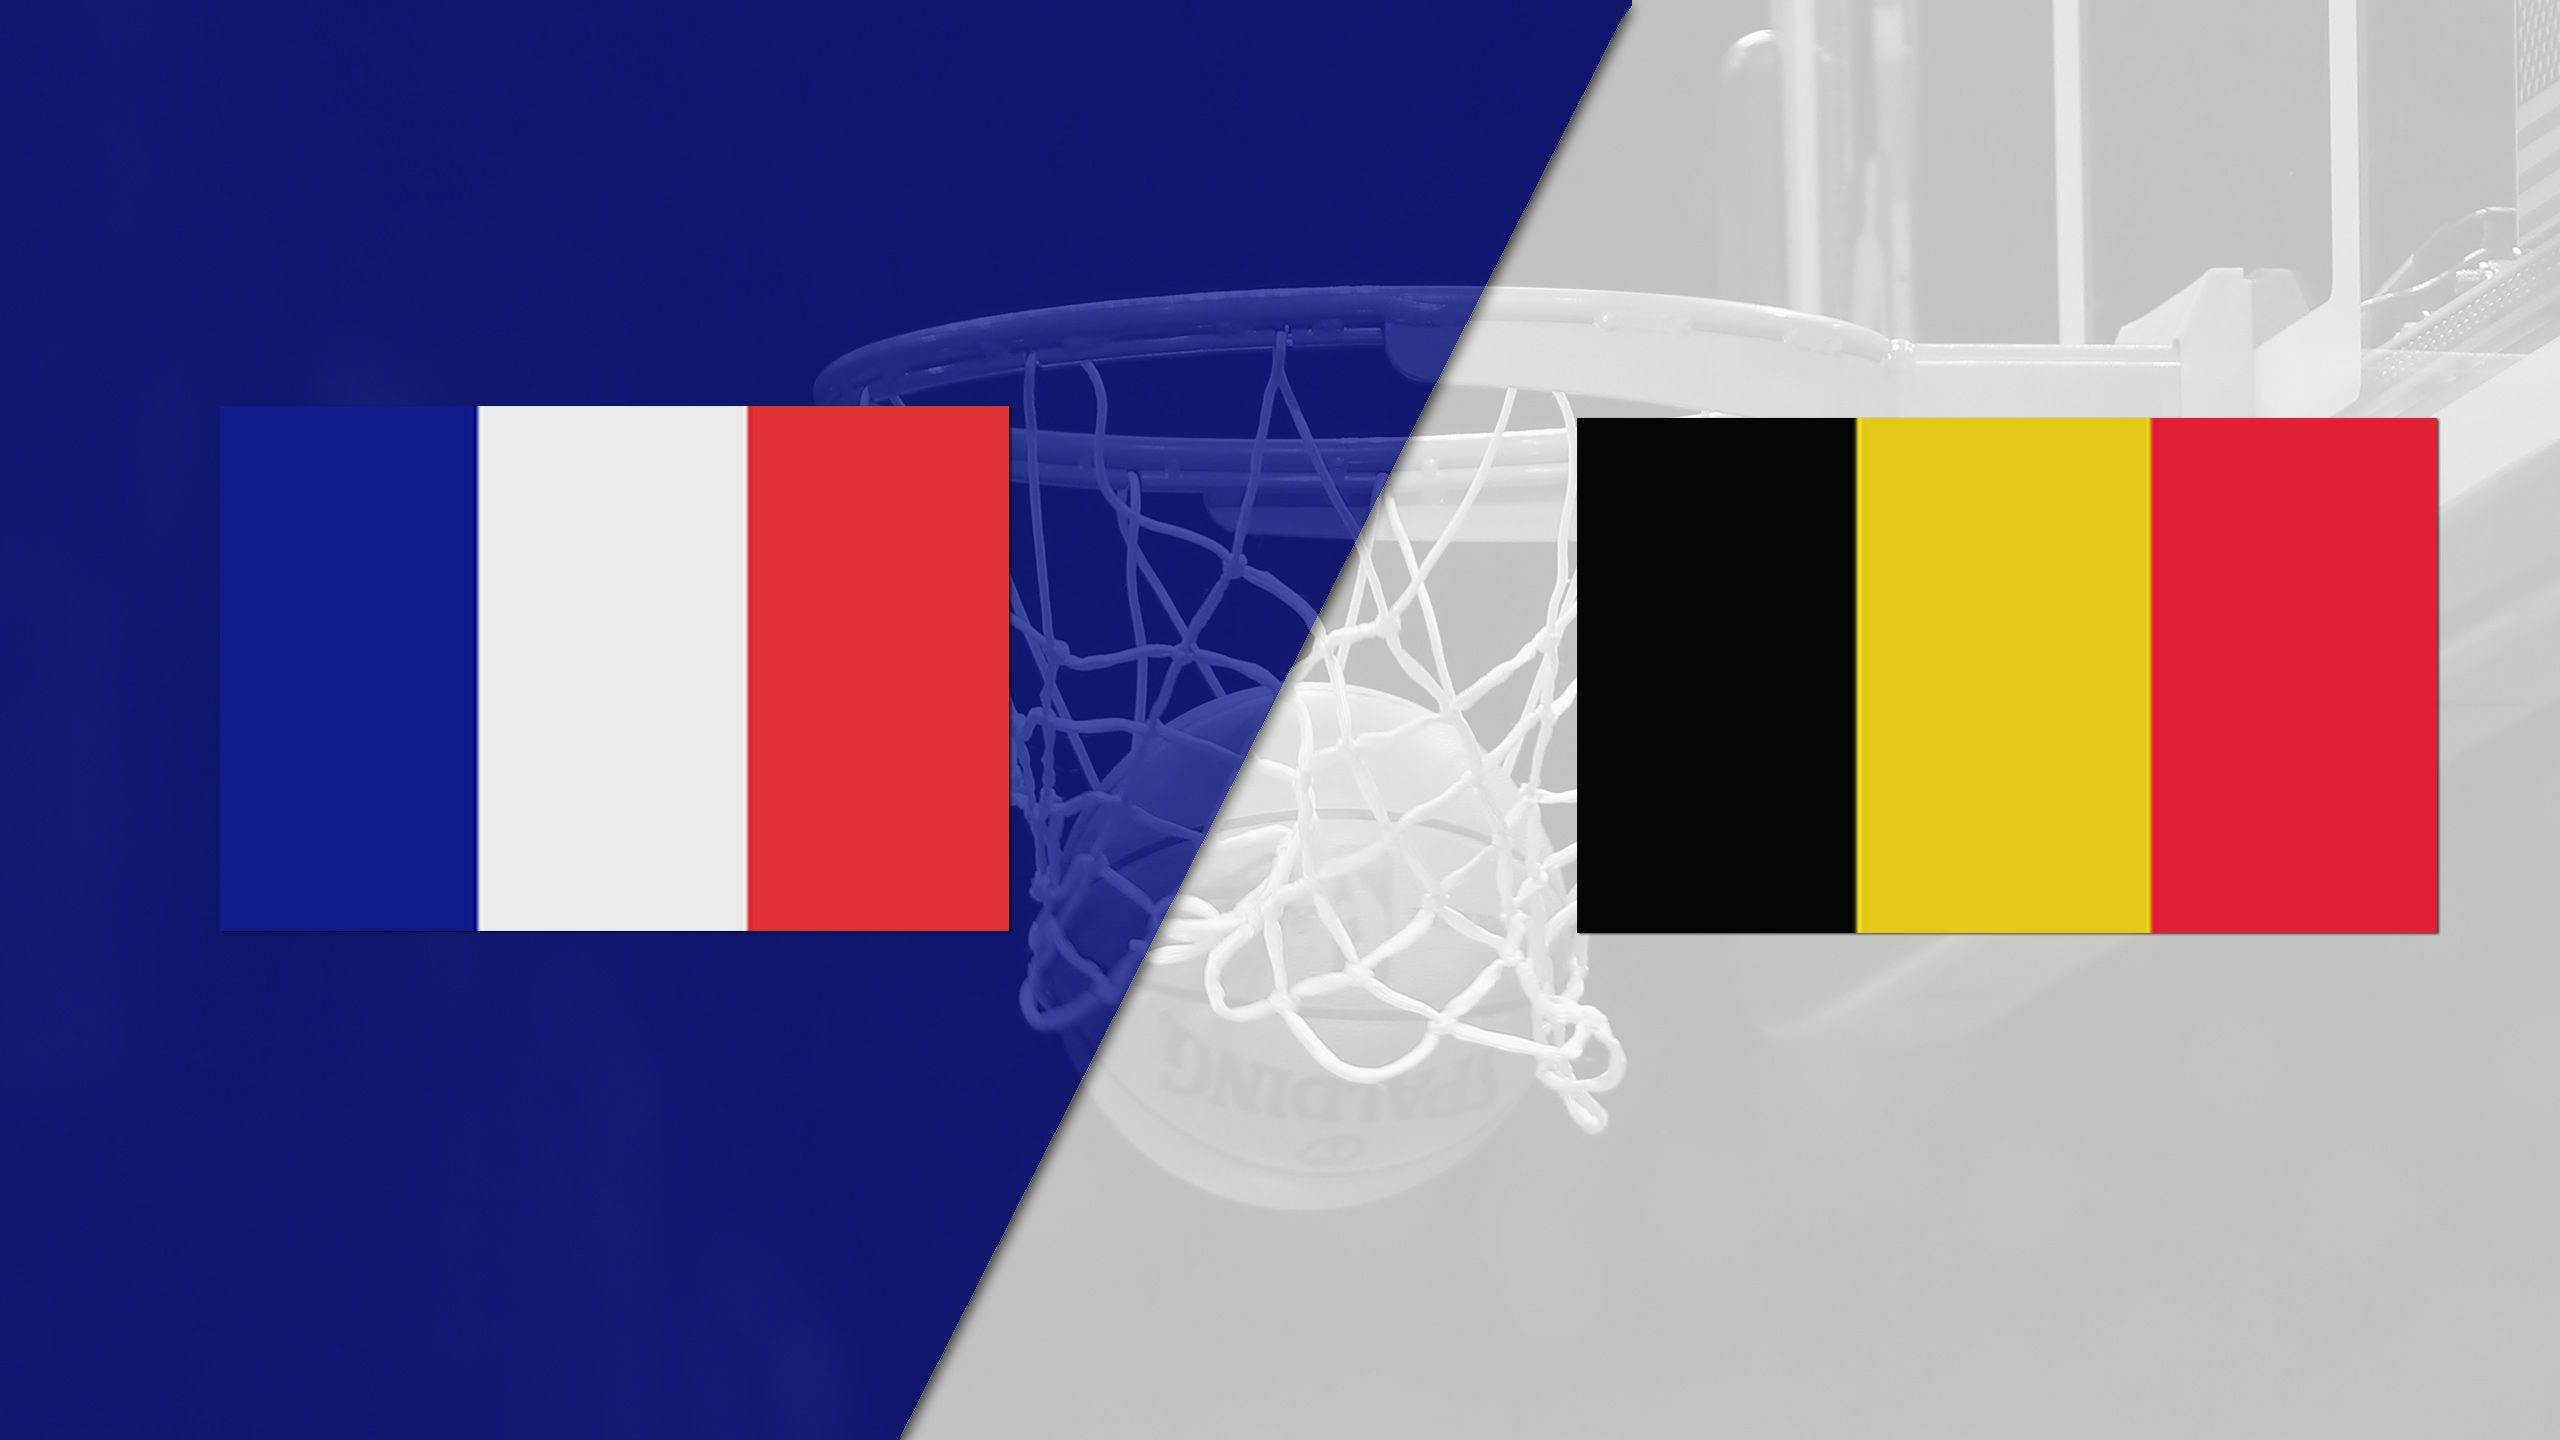 France vs. Belgium (FIBA World Cup 2019 Qualifier)